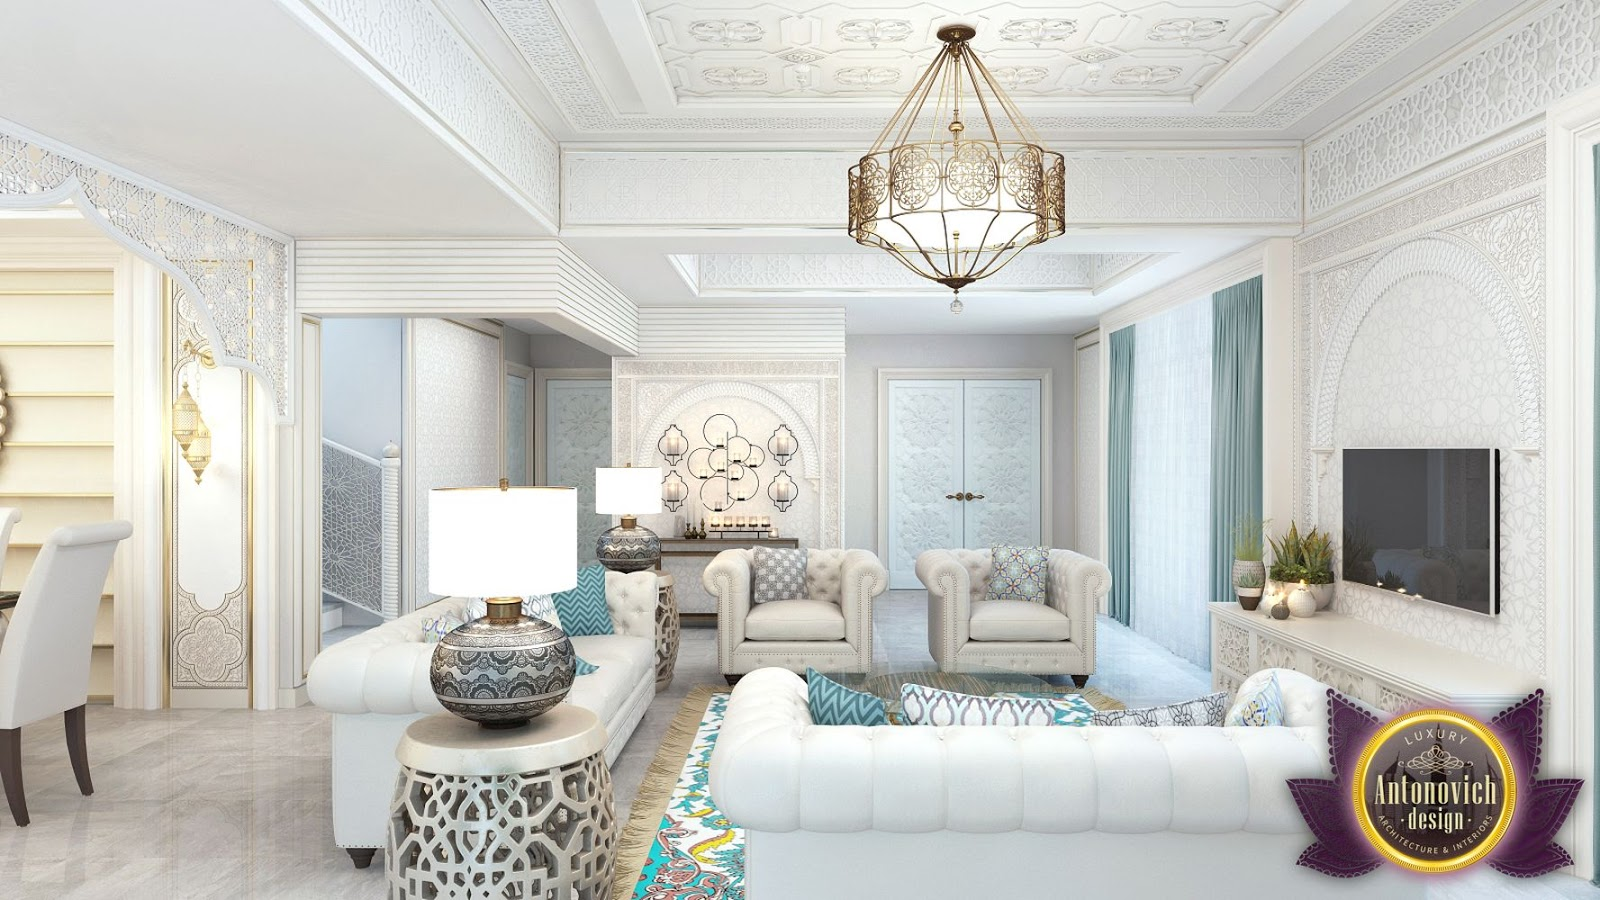 LUXURY ANTONOVICH DESIGN UAE: Interior design in the Moroccan style ...